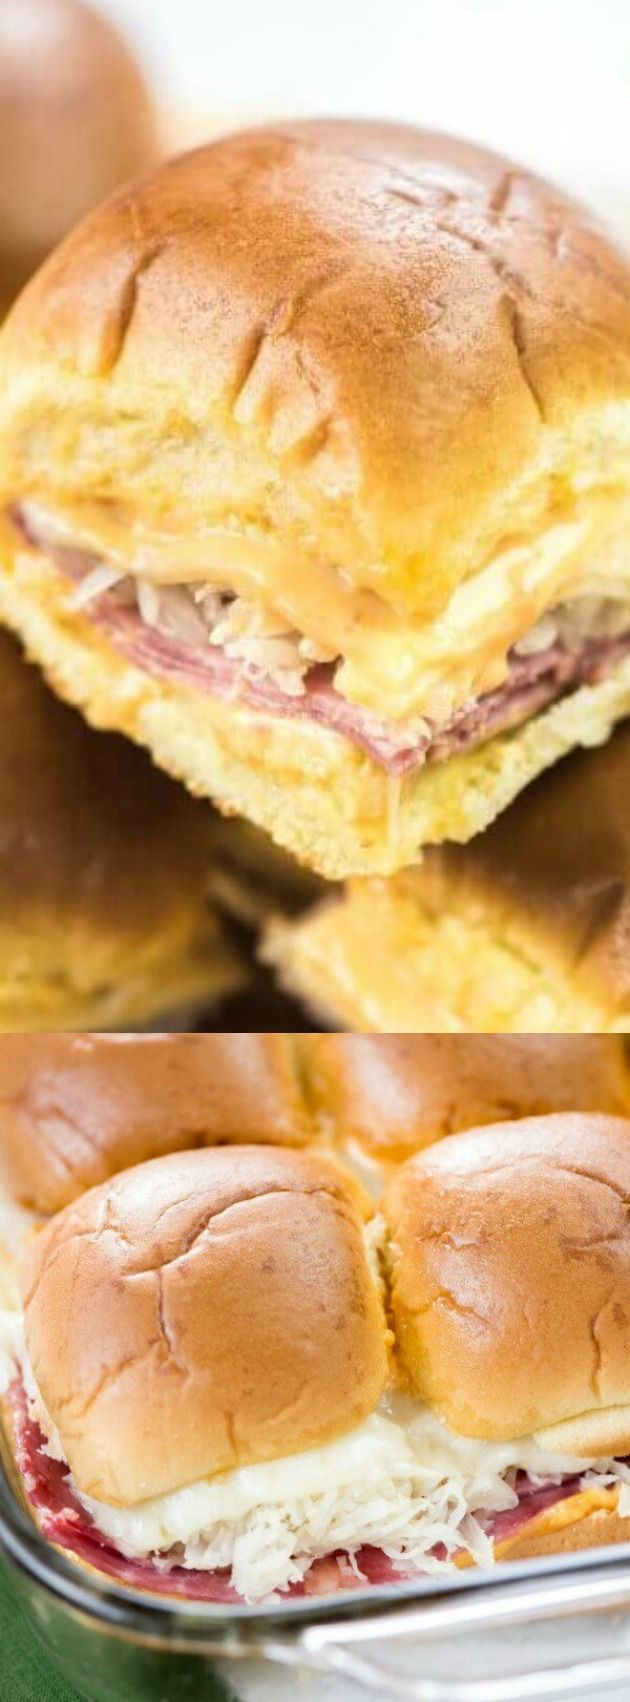 These Baked Reuben Sliders from Real Housemoms are an absolutely delicious idea for any get together or even a quick, warm lunch.